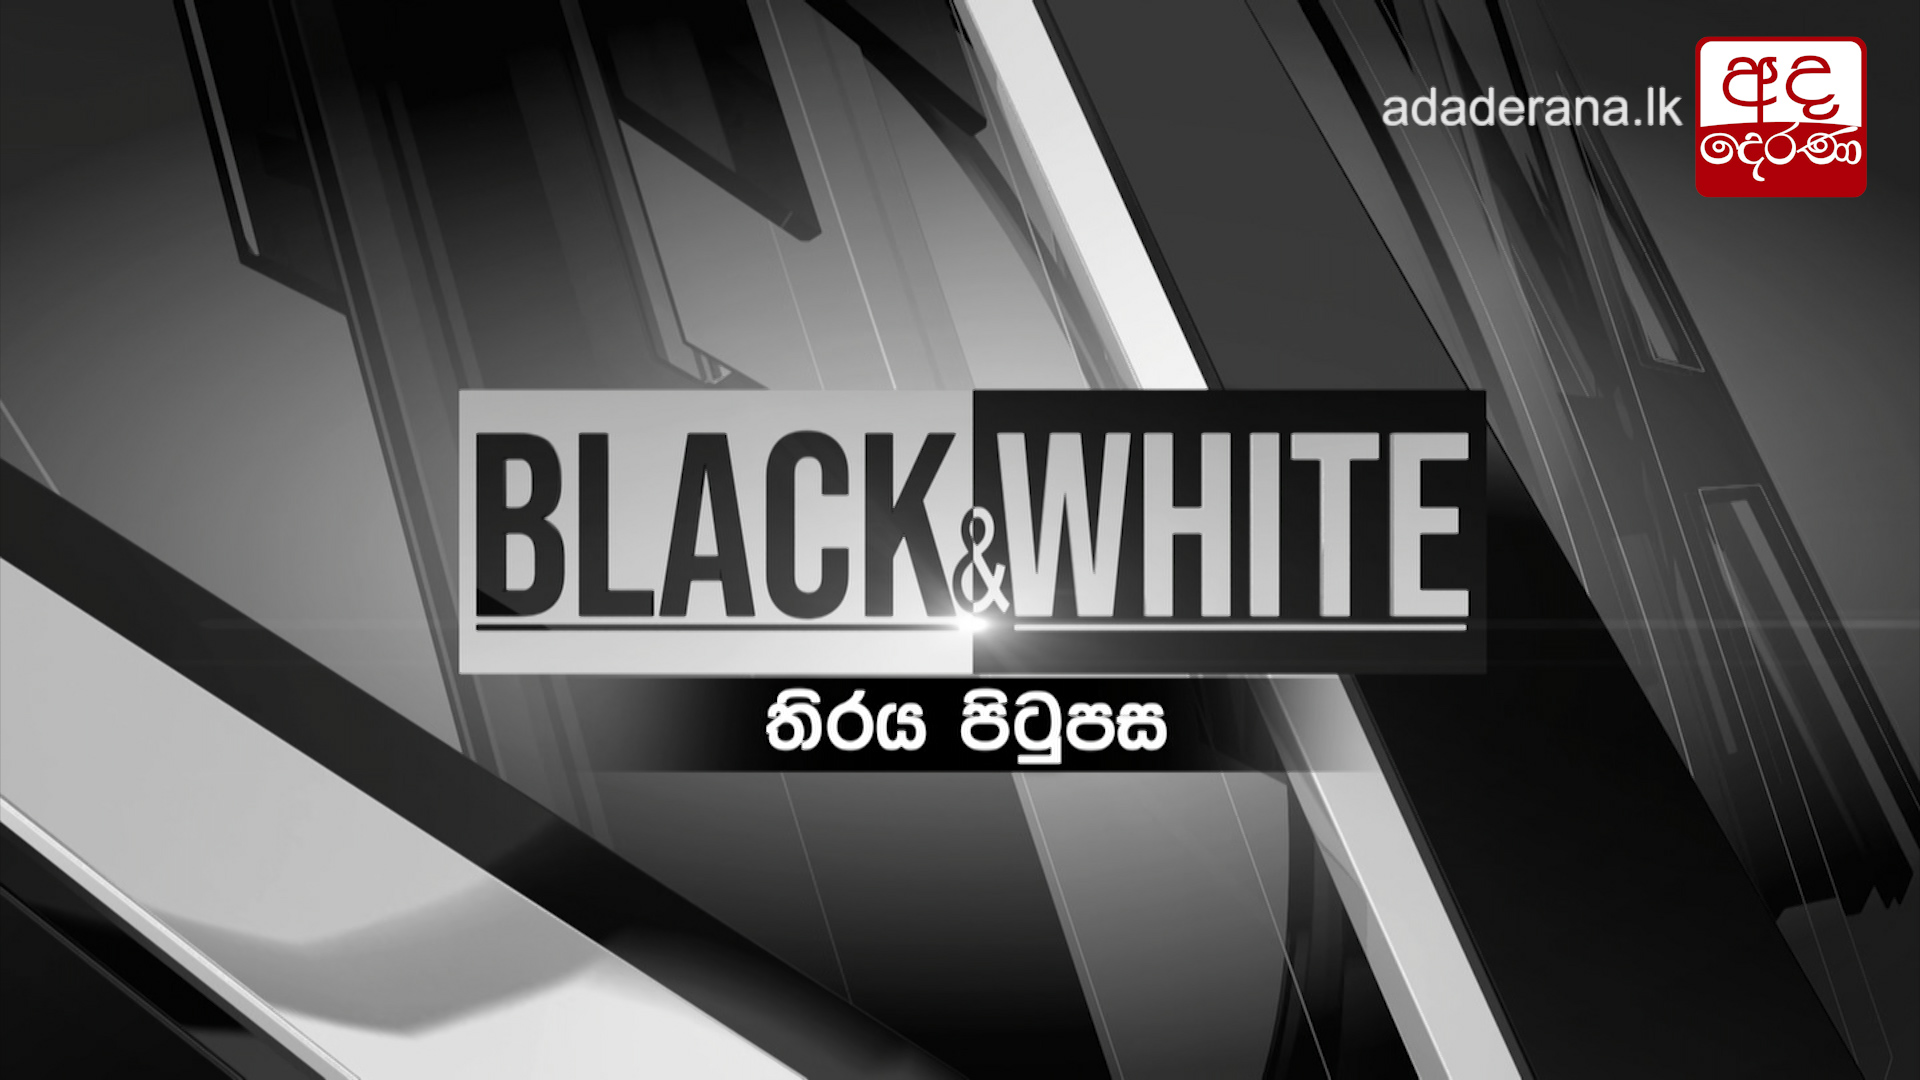 Ada Derana Black & White - 2020.07.03